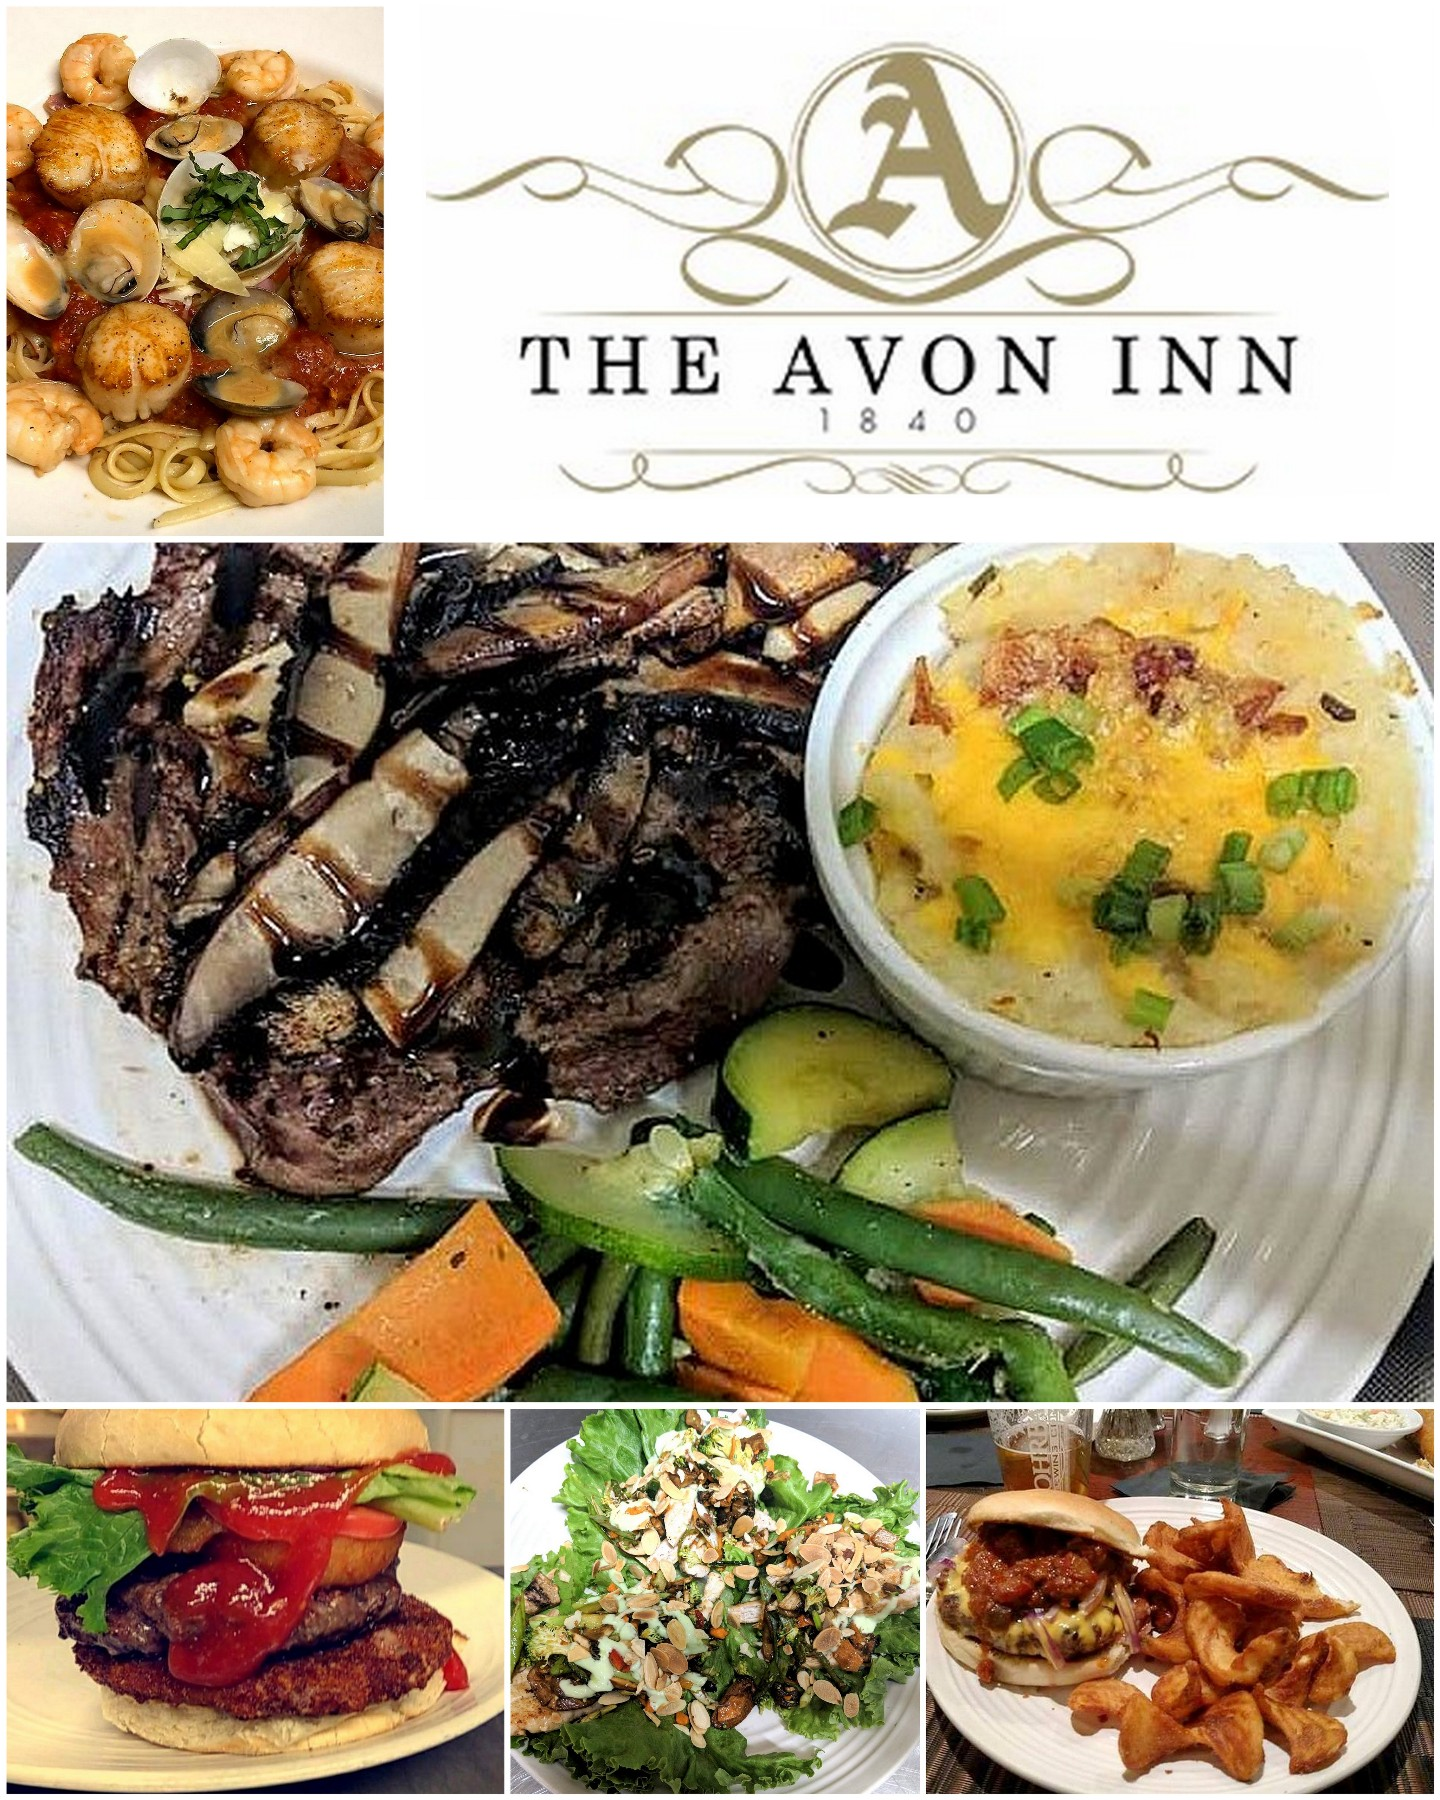 The Avon Inn, Avon NY, Eat IN Livingston, Livingston County Chamber of Commerce and Tourism, Weddings, Events, Dinner, Fine Dining, Trip Planner, Find It IN